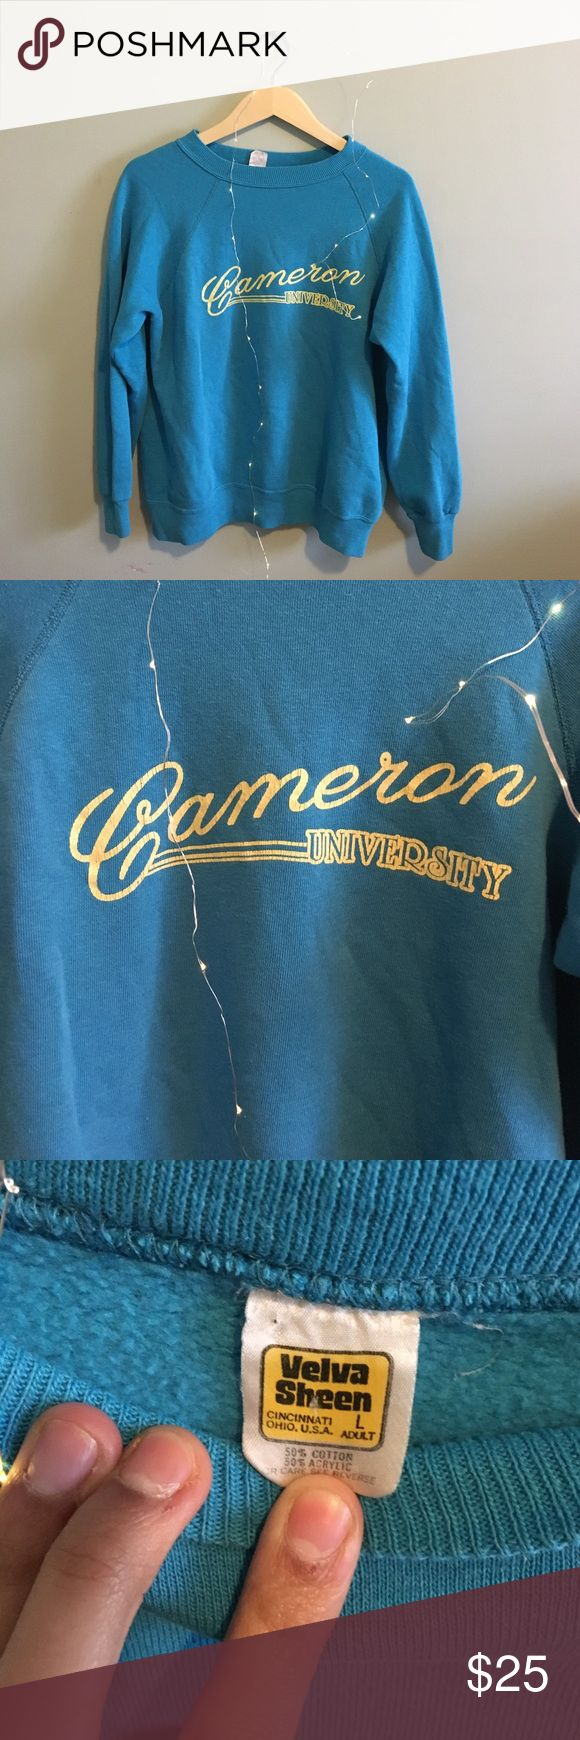 Vintage Cameron University Sweatshirt Lightly/vintage worn extremely soft sweatshirt. Size L but could fit any size in my opinion. Light yellow lettering that says Cameron University. Too cute! Vintage Tops Sweatshirts & Hoodies